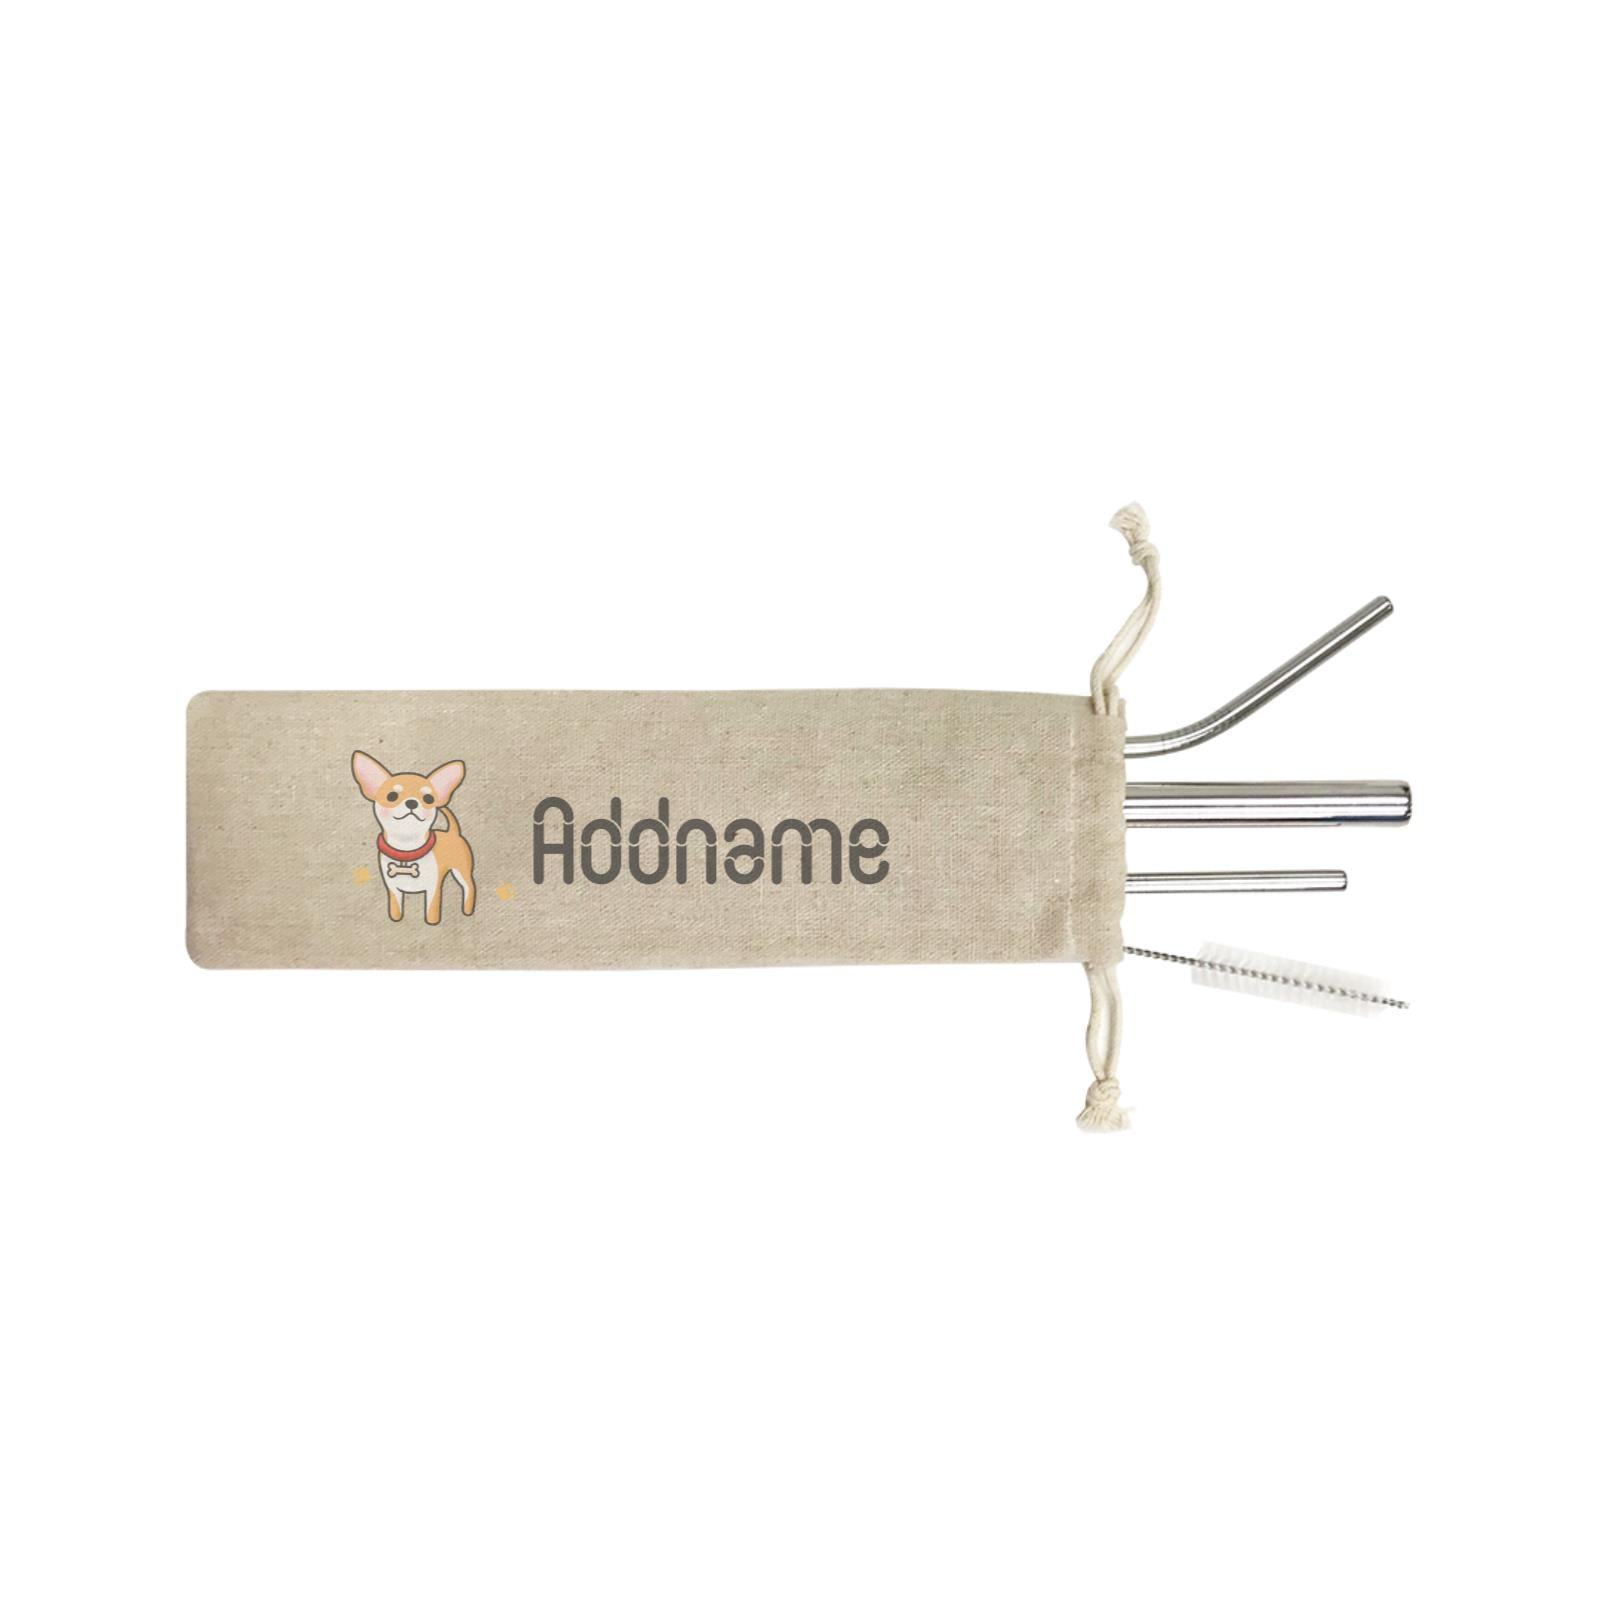 Cute Hand Drawn Style Chihuahua Addname ST SZP 4-In-1 Stainless Steel Straw Set in Satchel